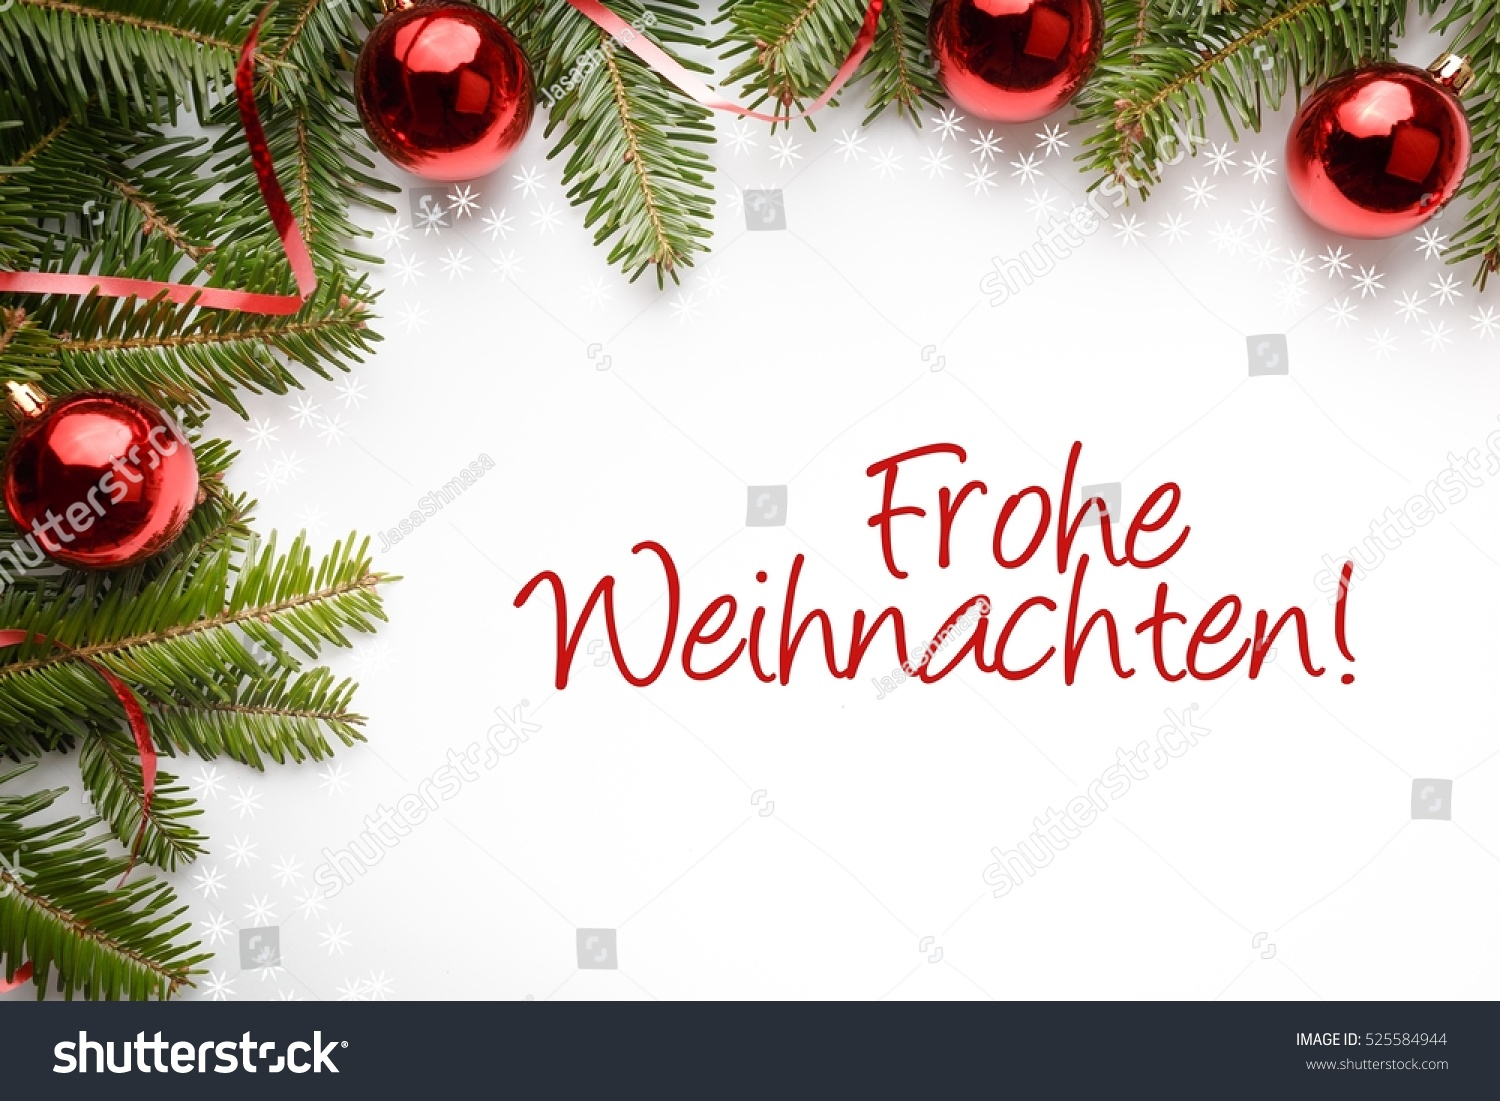 Christmas Decoration Background With Christmas Greeting In Spanish